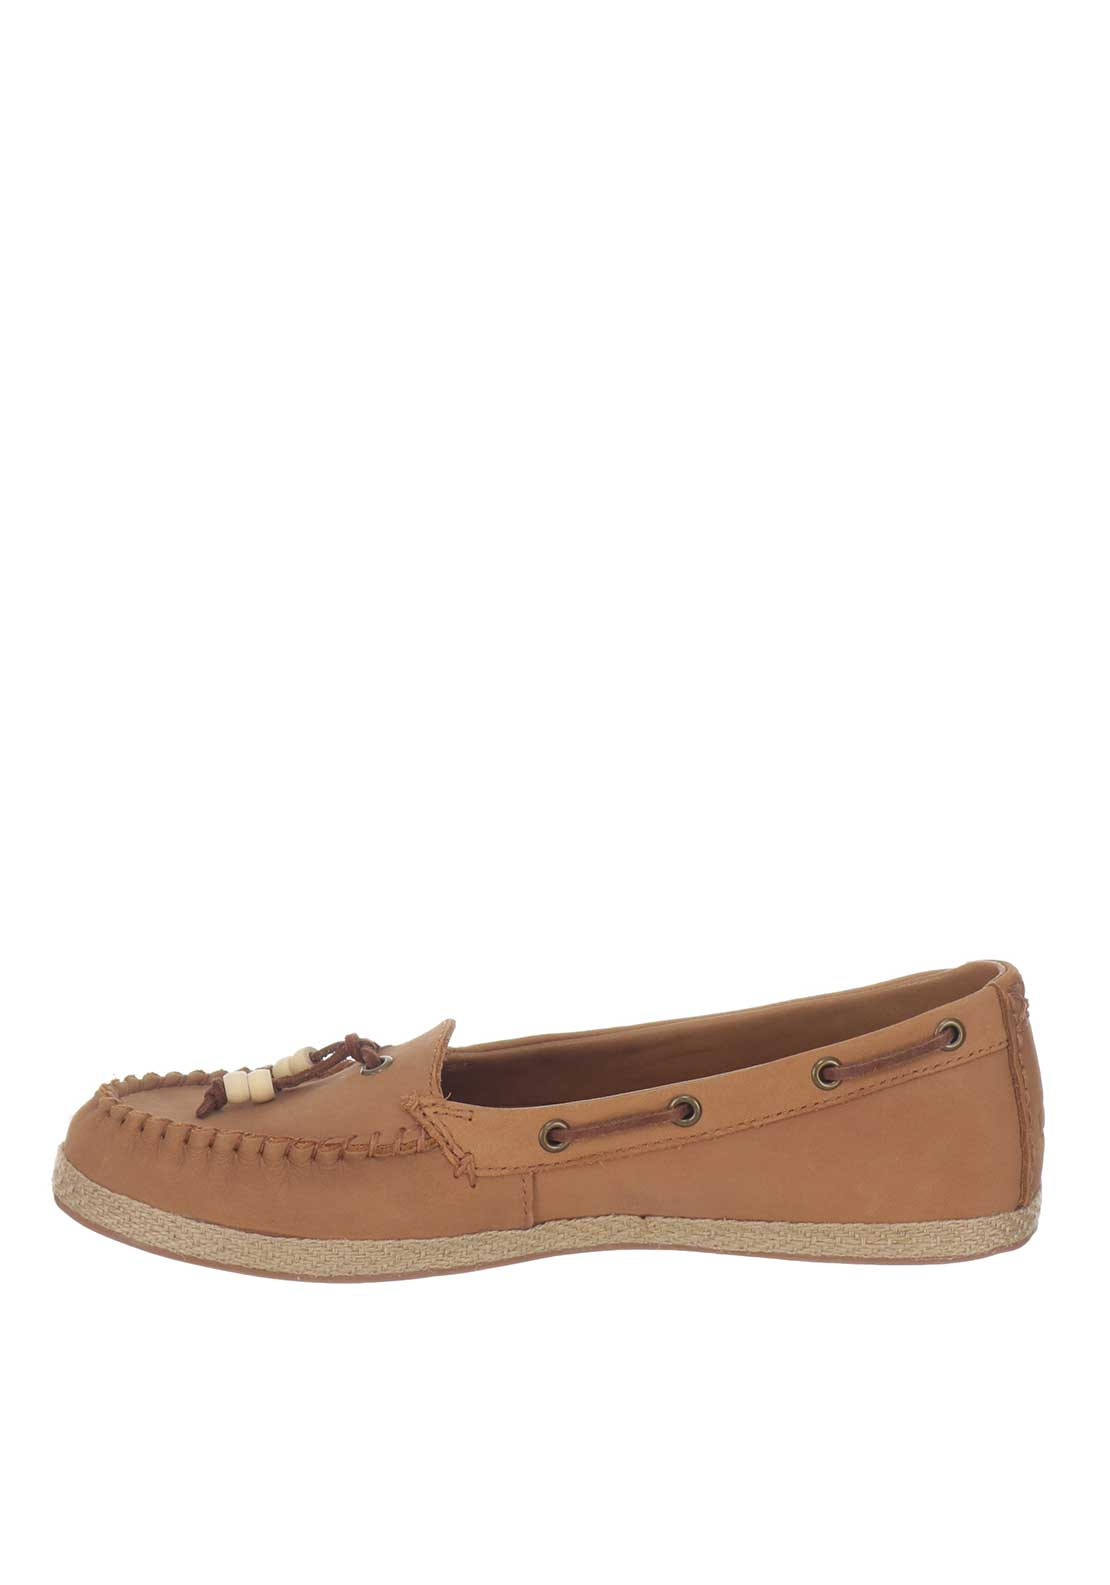 9b56da466a8 UGG Australia Womens Suzette Leather Loafers, Tan